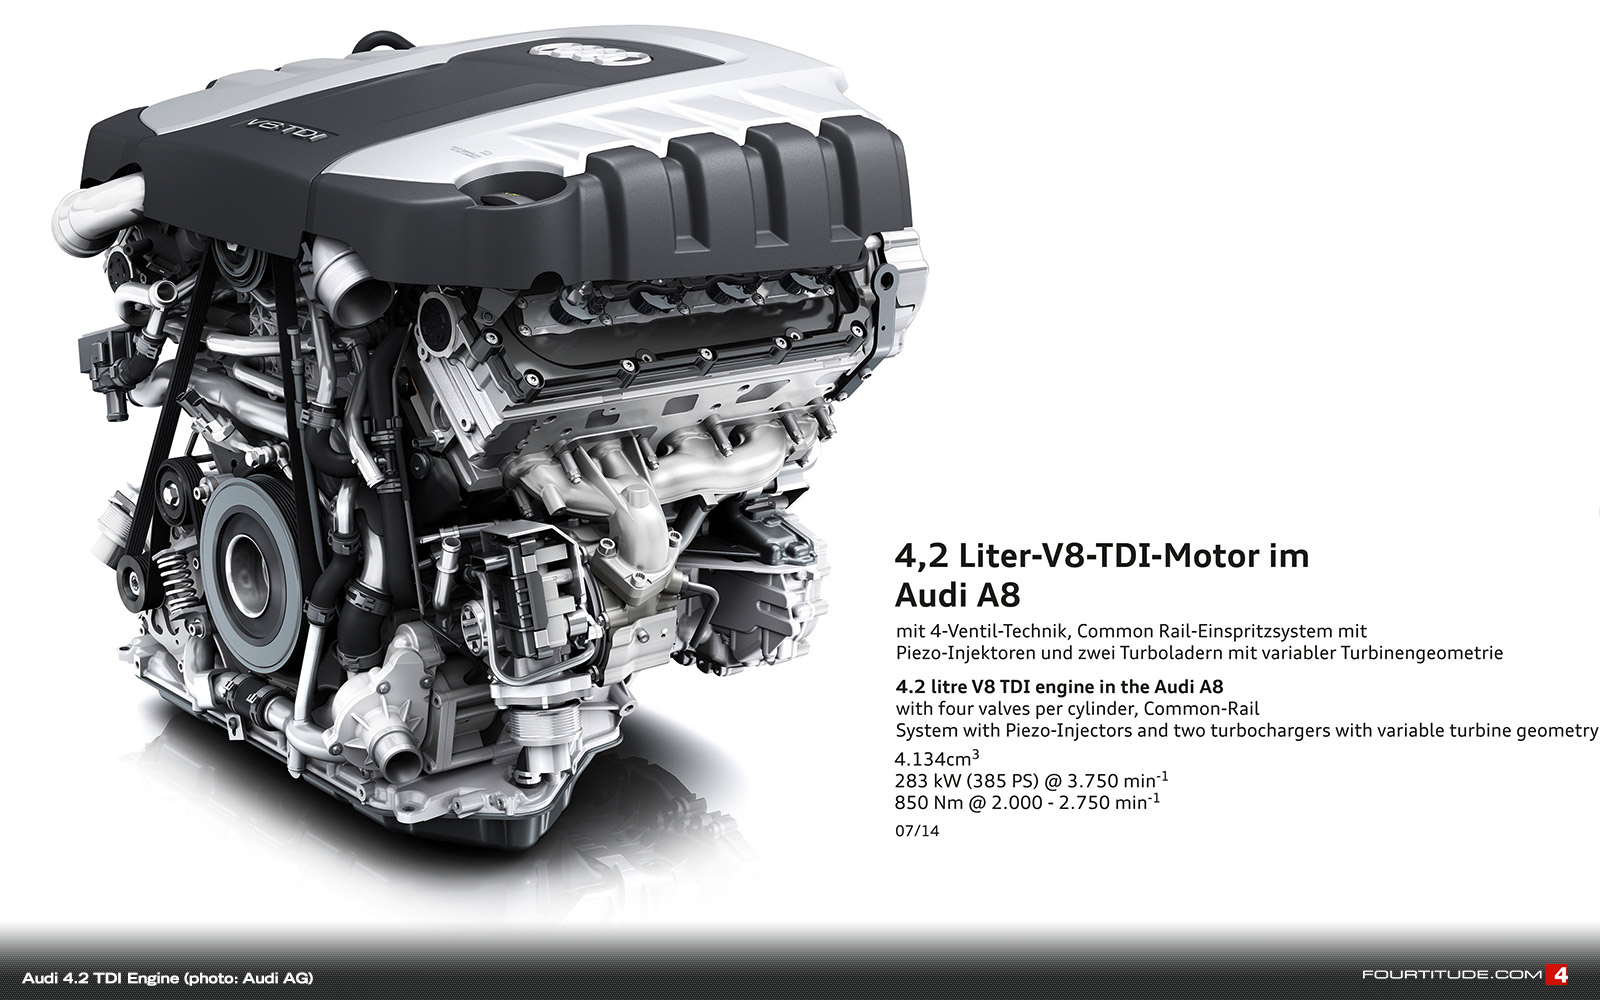 Audi V8 Engine Diagram - wiring diagram conductor-adress -  conductor-adress.pennyapp.it | Audi V8 Engine Diagram |  | PennyApp